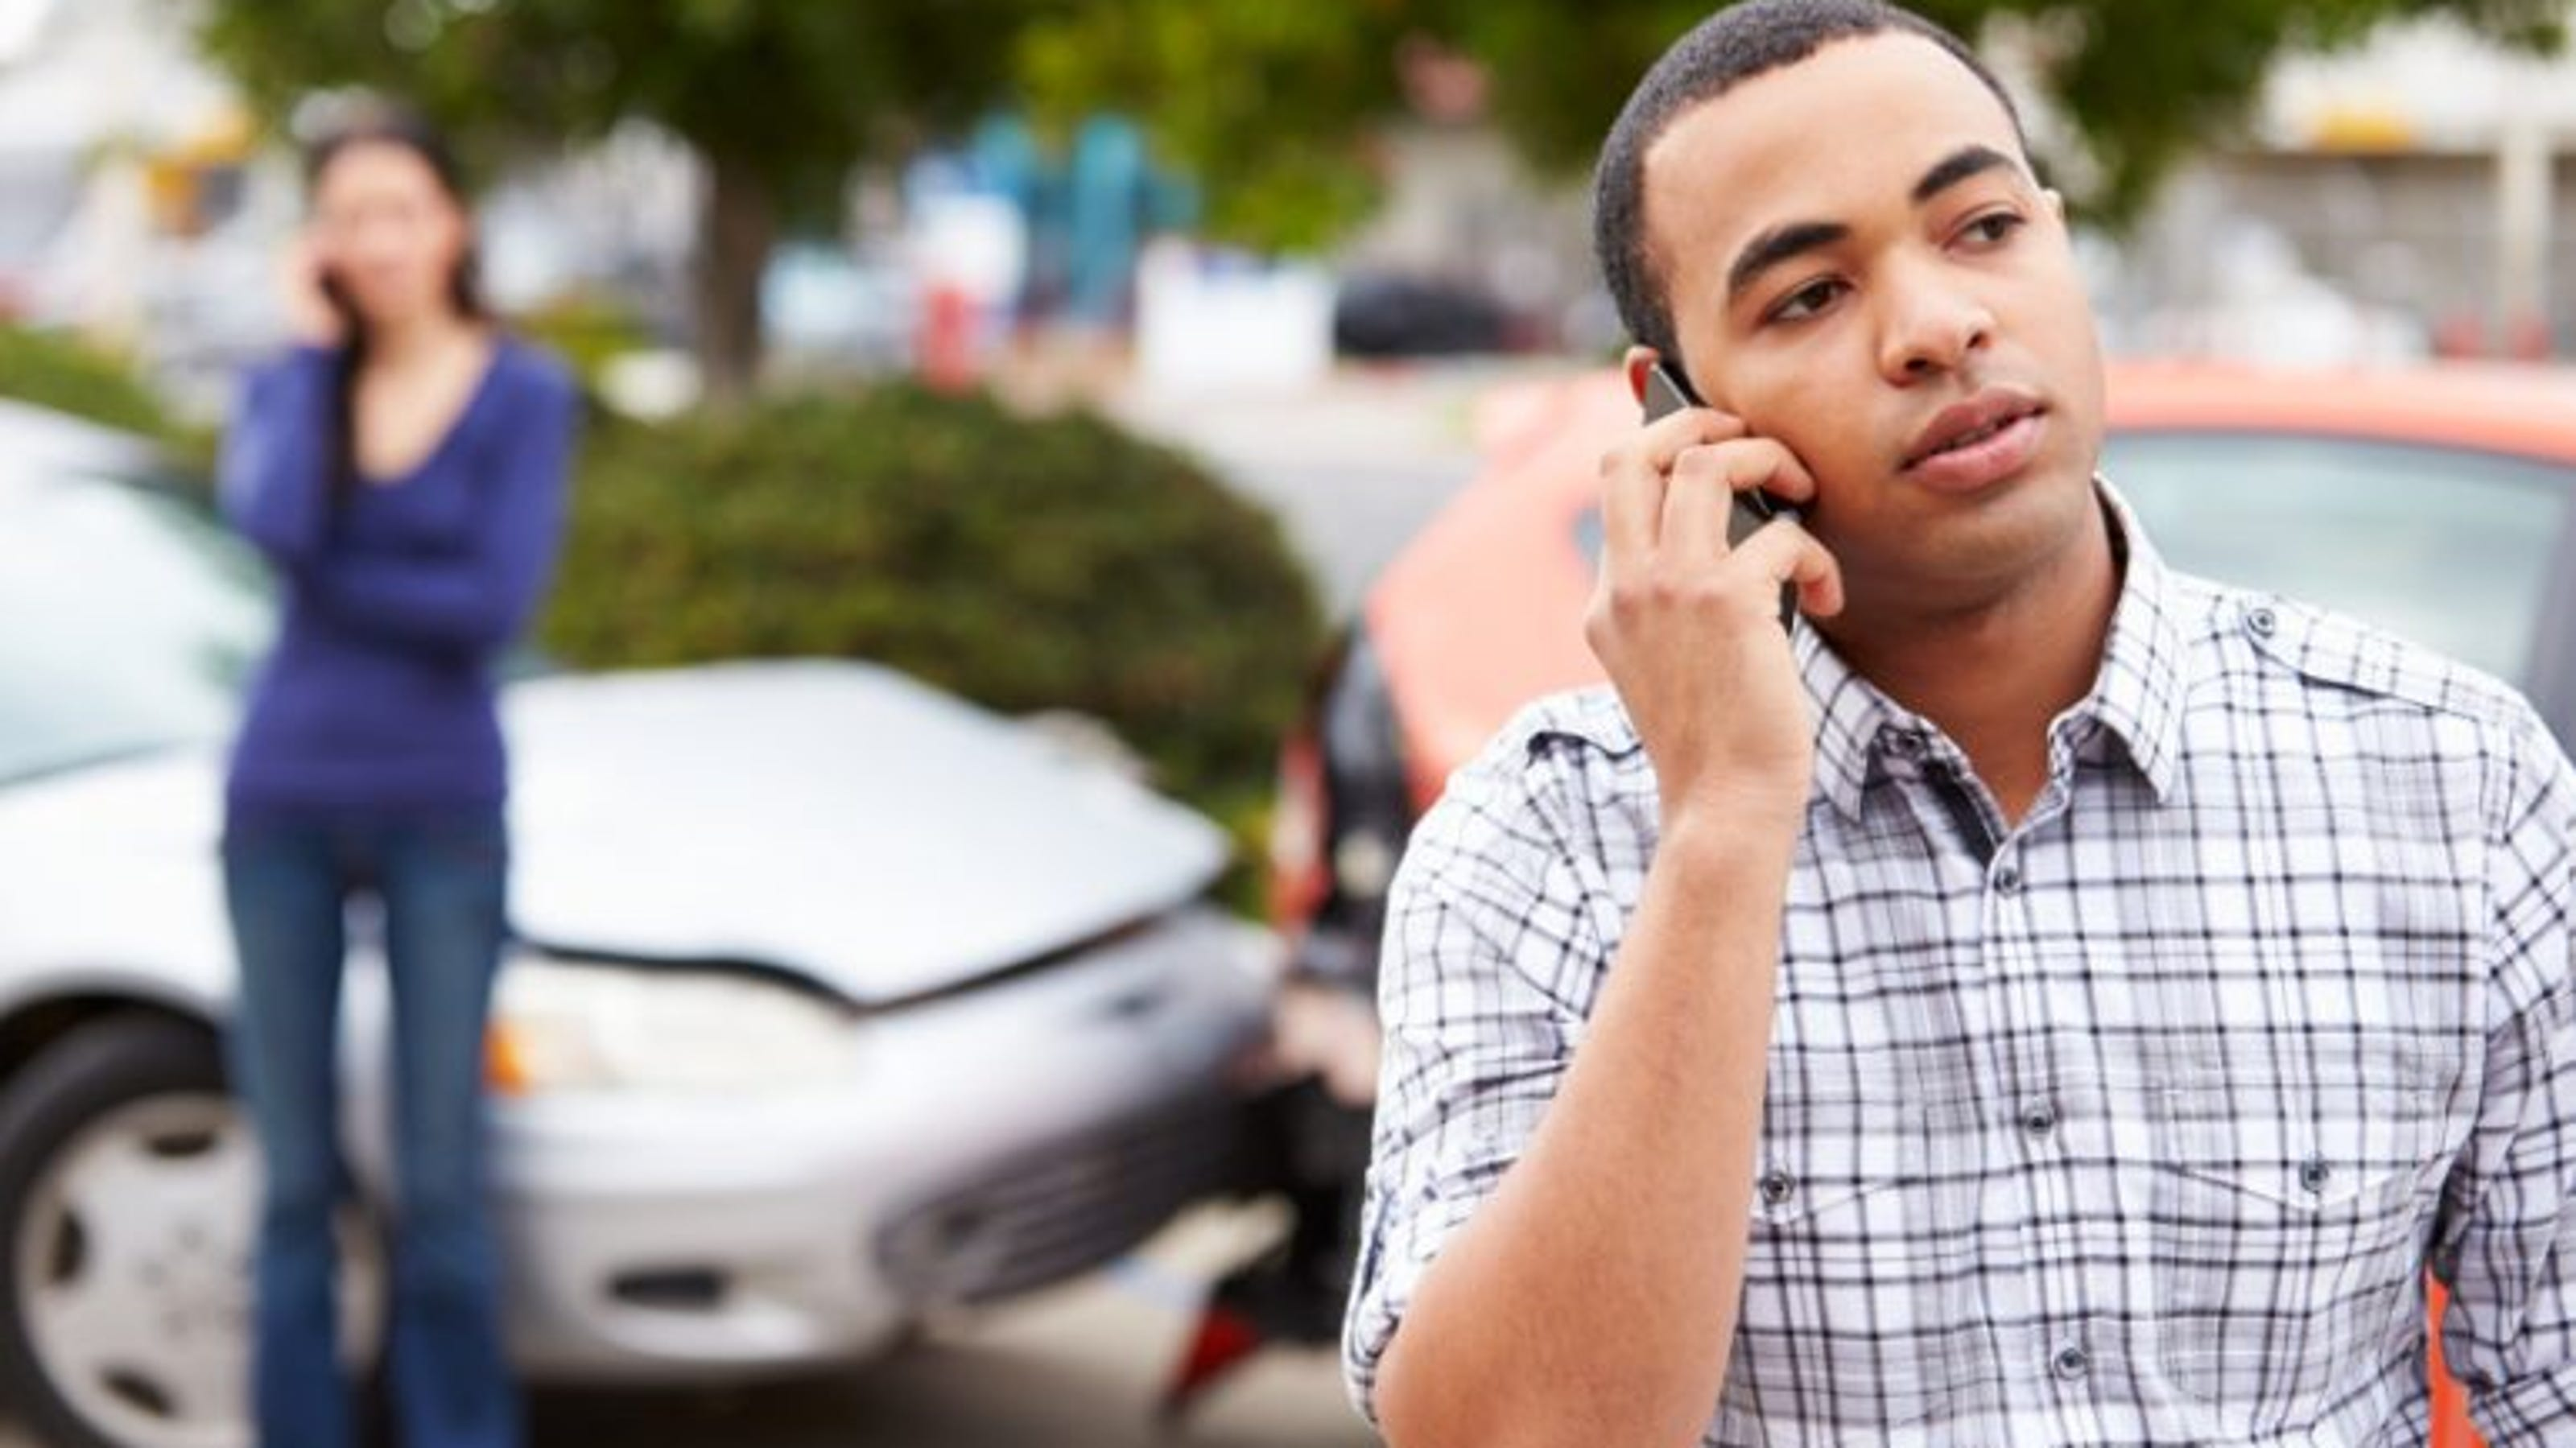 Auto Insurance Rates Rise As Number Of Cars Distractions Rise